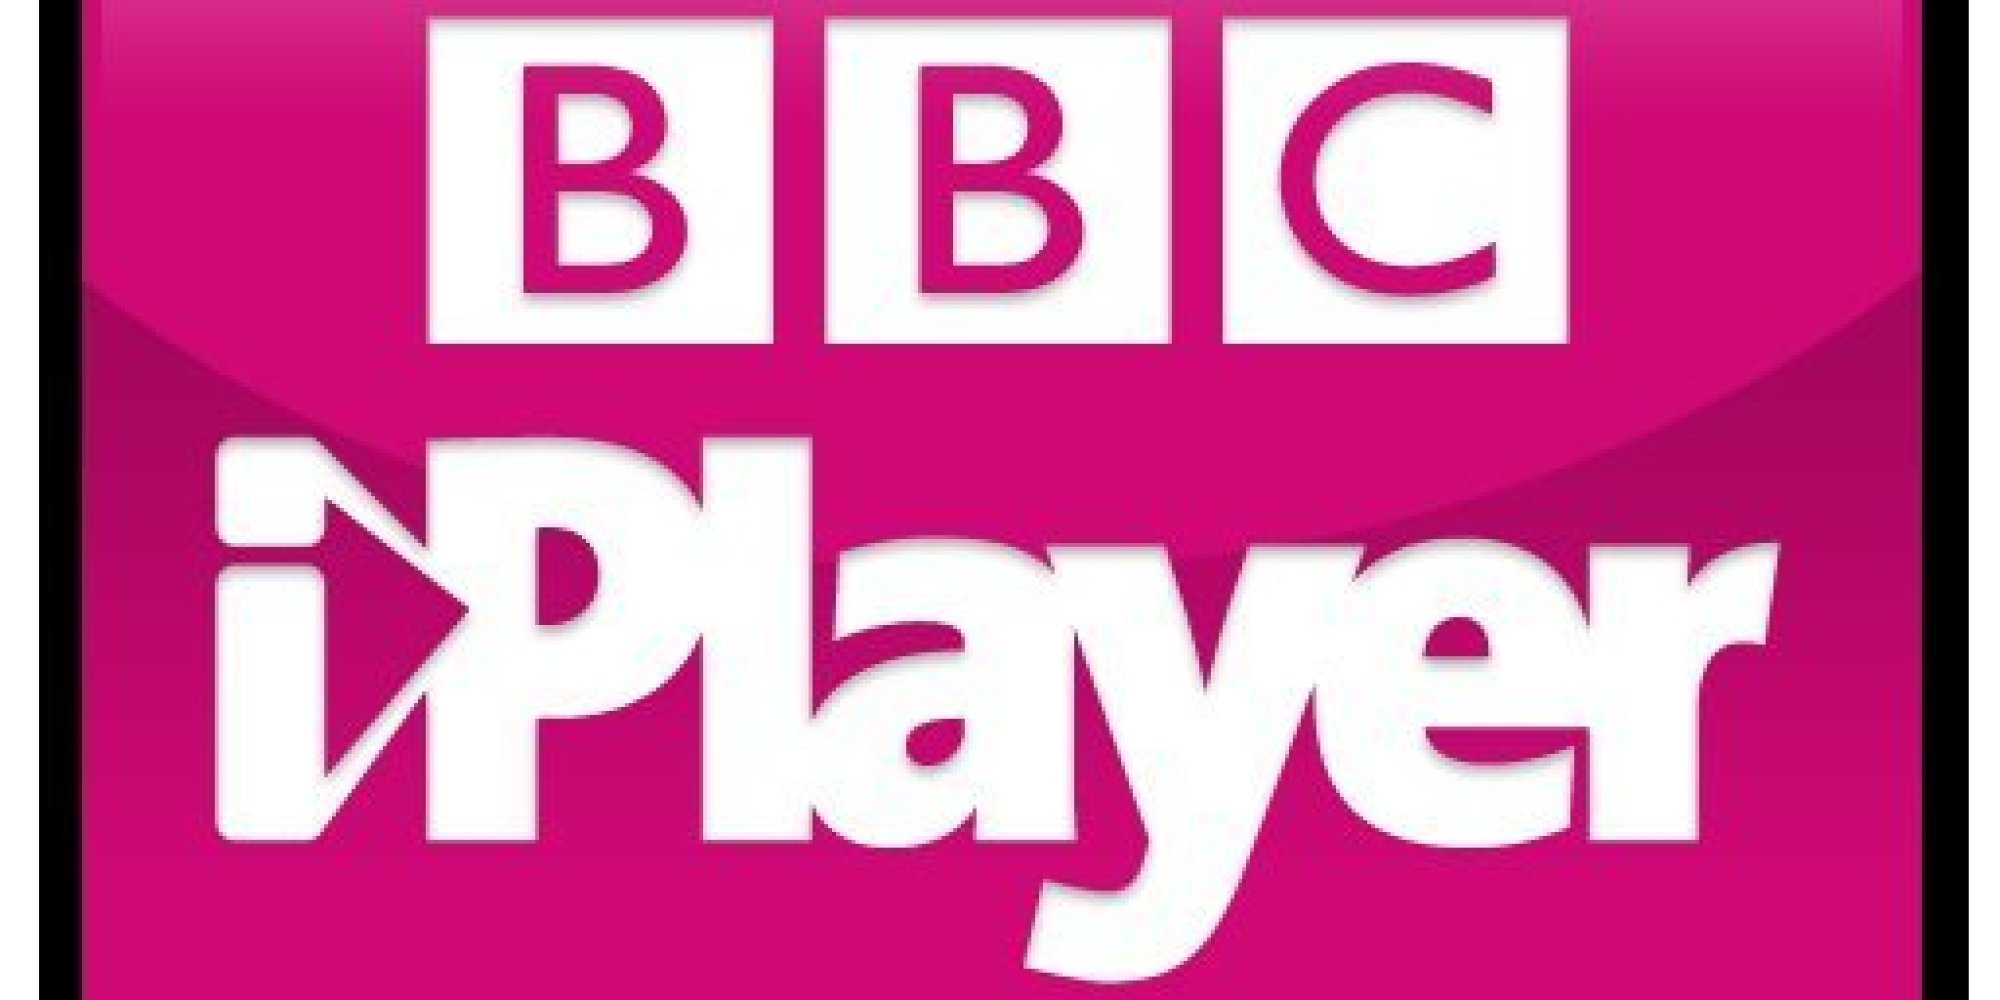 BBC Player only works in selected countries